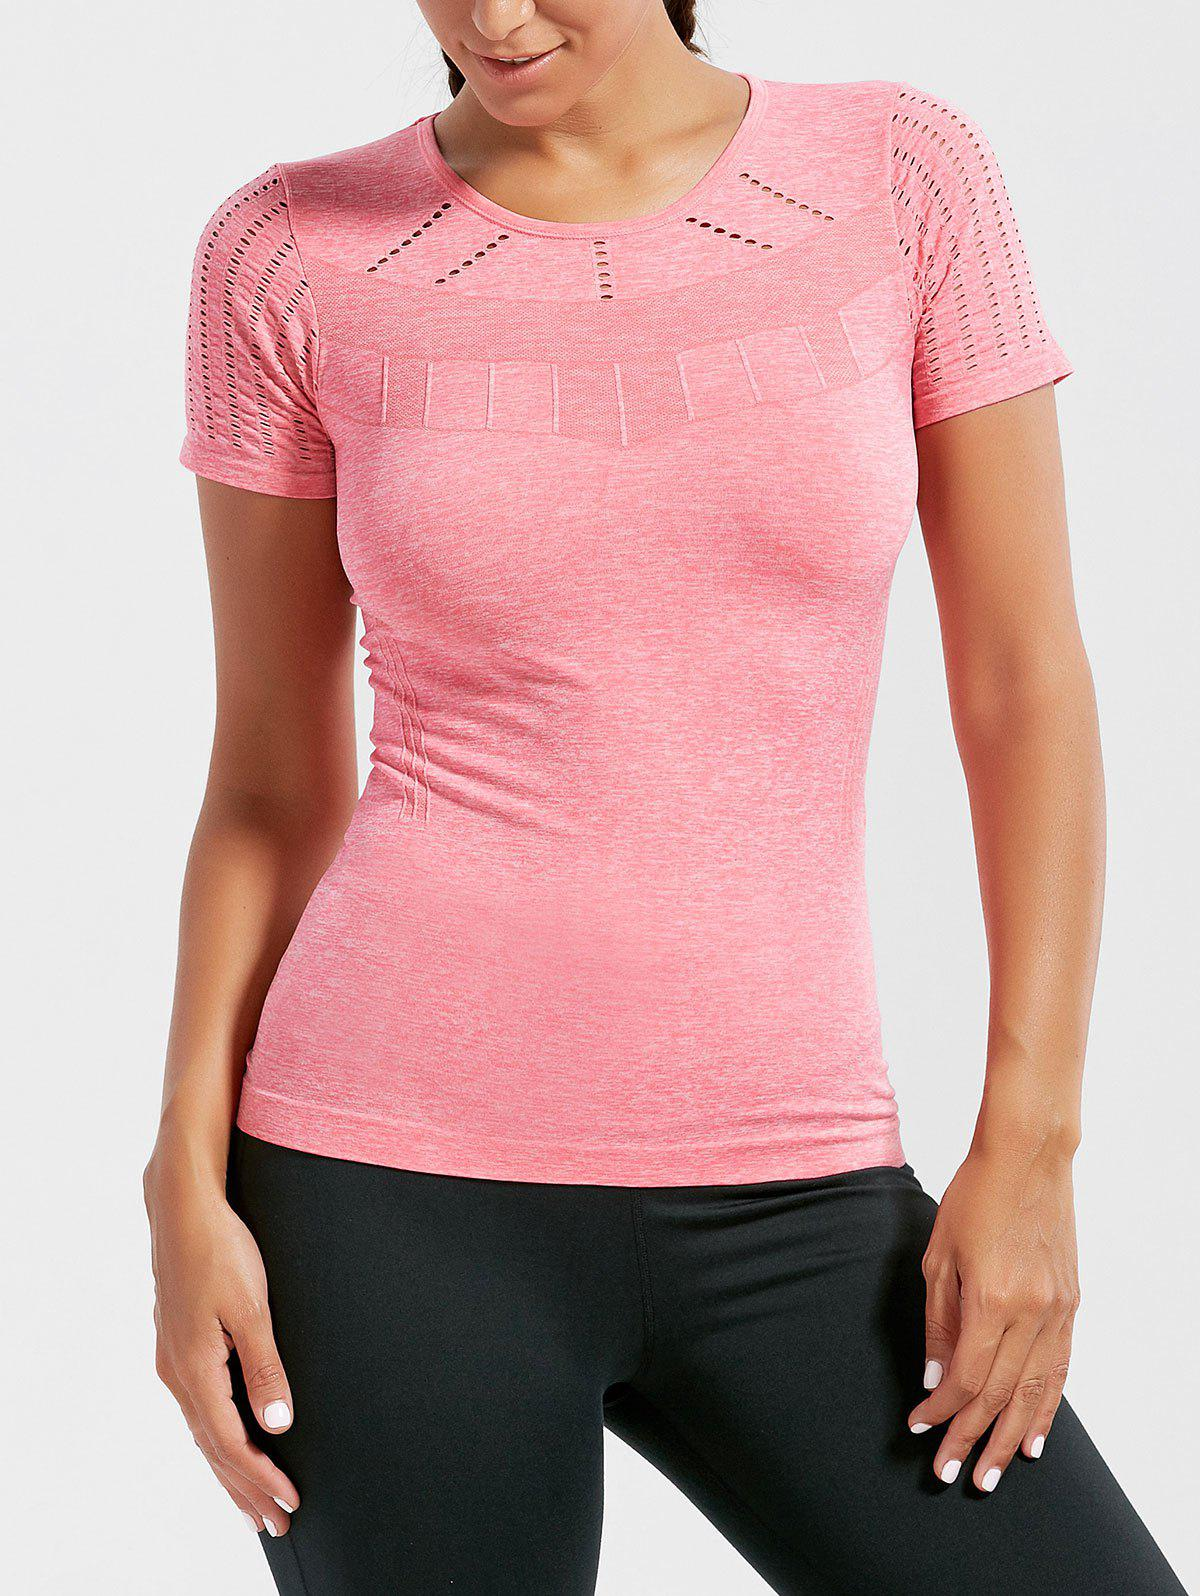 Breathable Ripped Workout T-shirt - DEEP PINK S